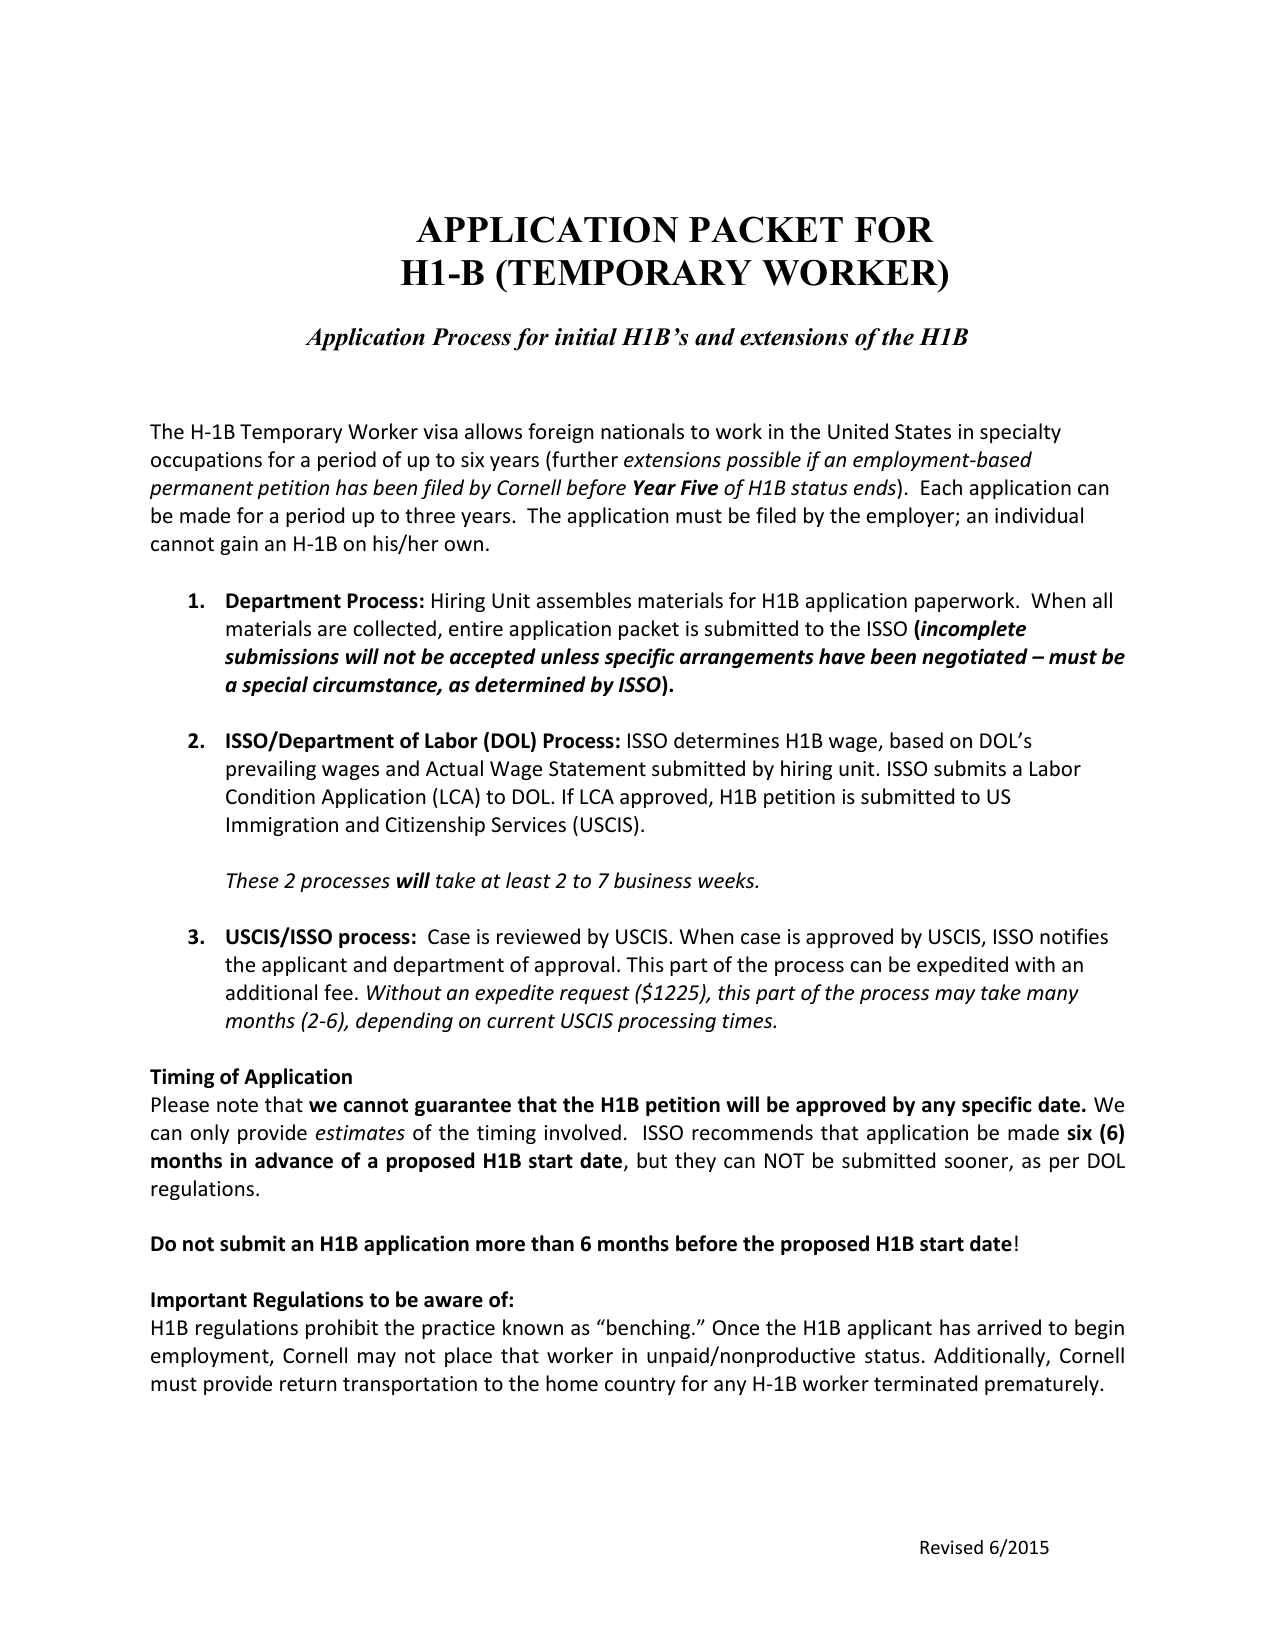 Application PACKET for - International Students and Scholars